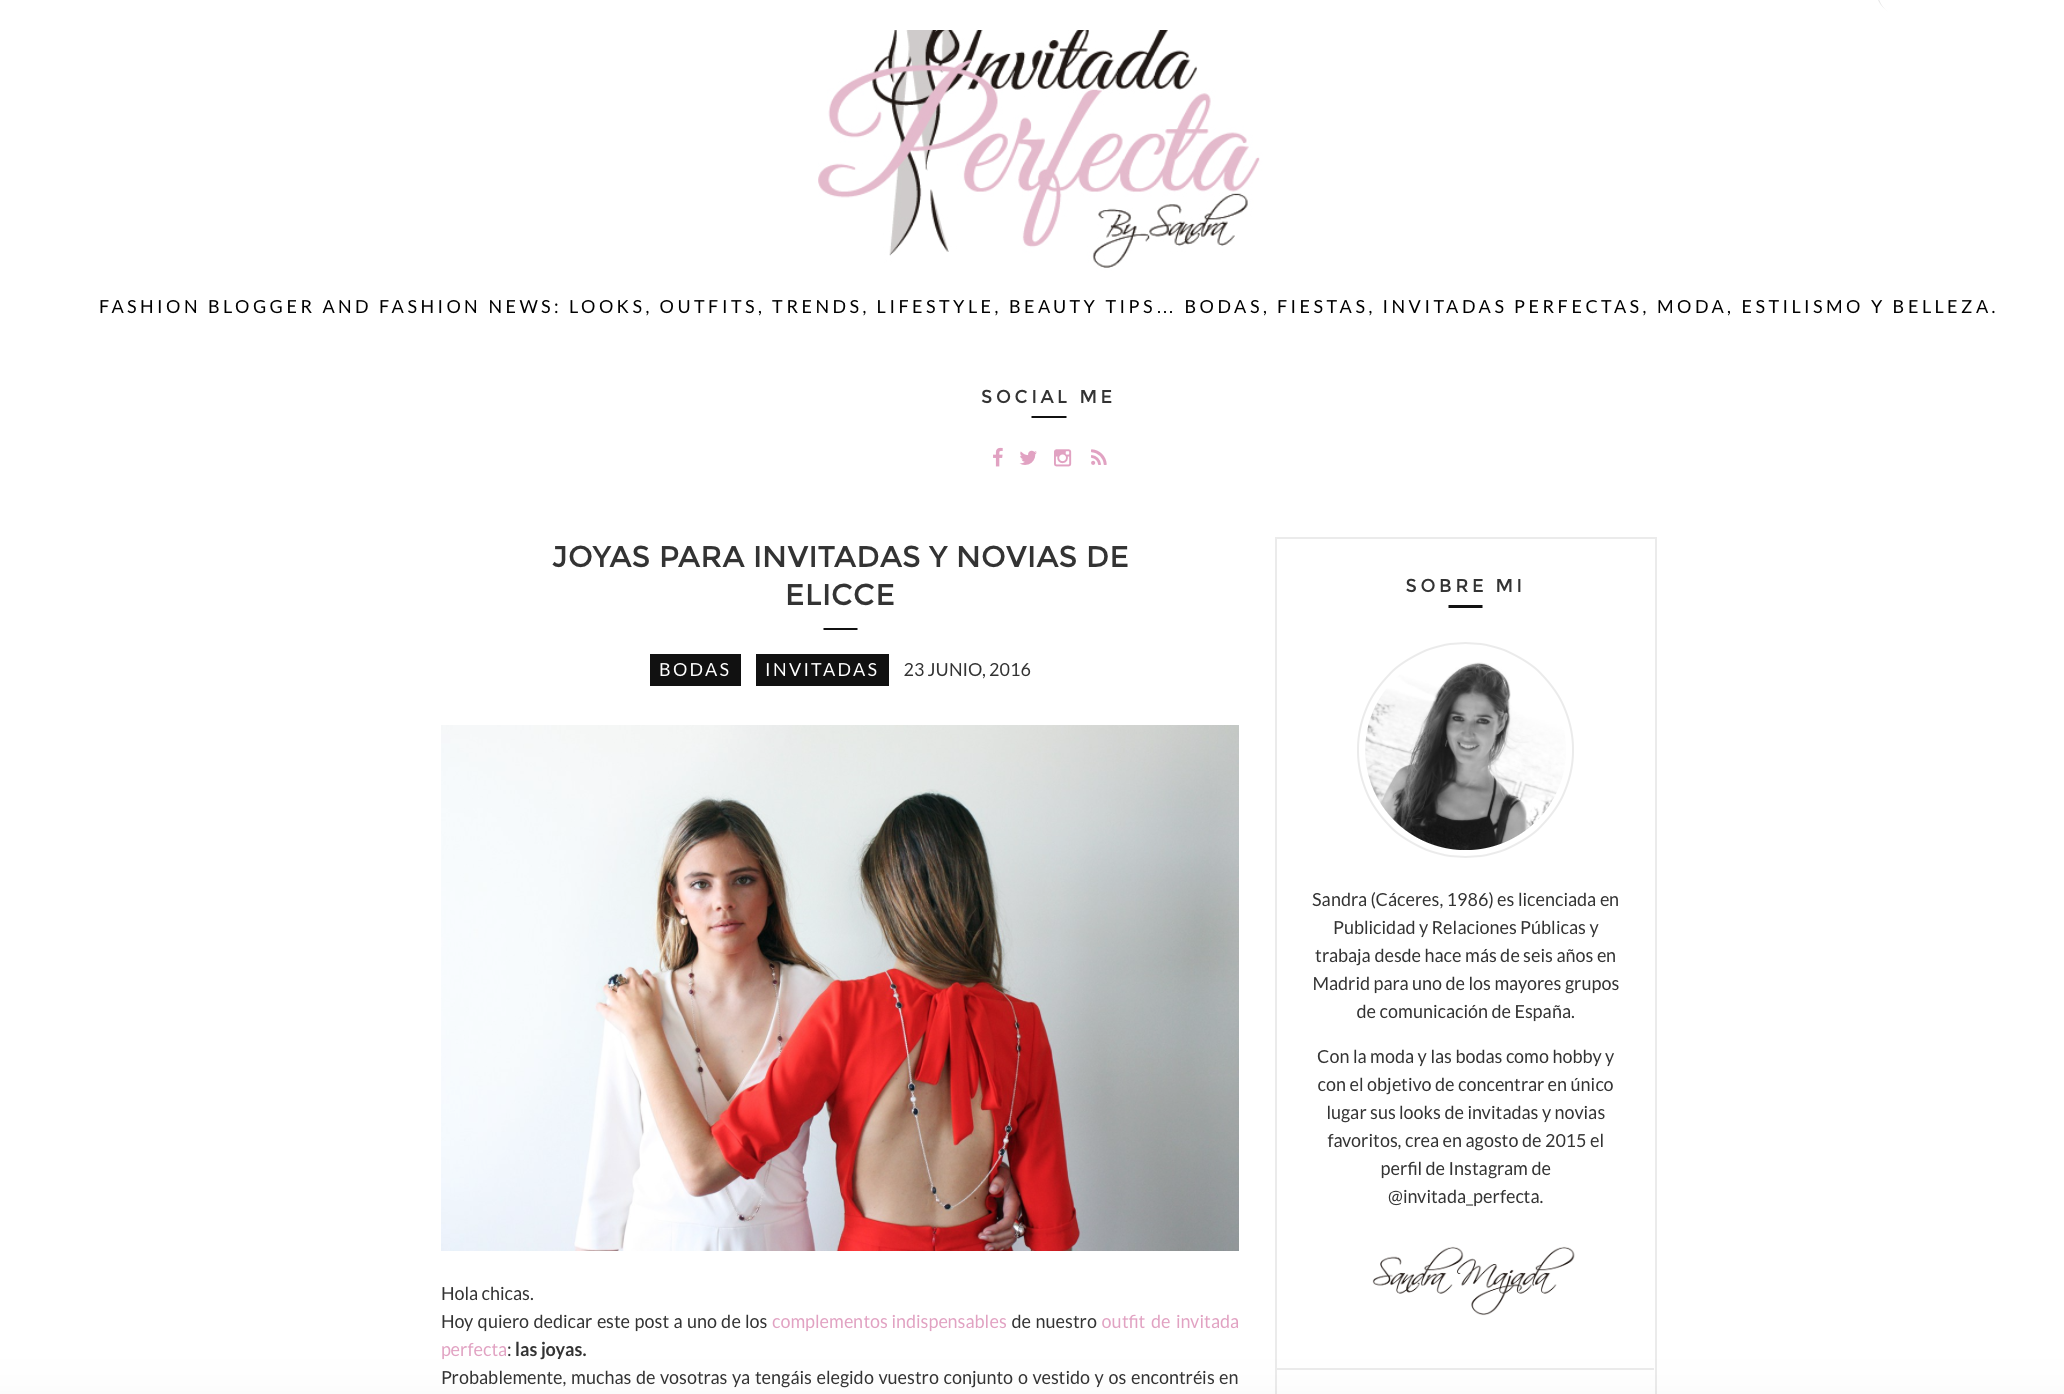 Blog la invitada perfecta